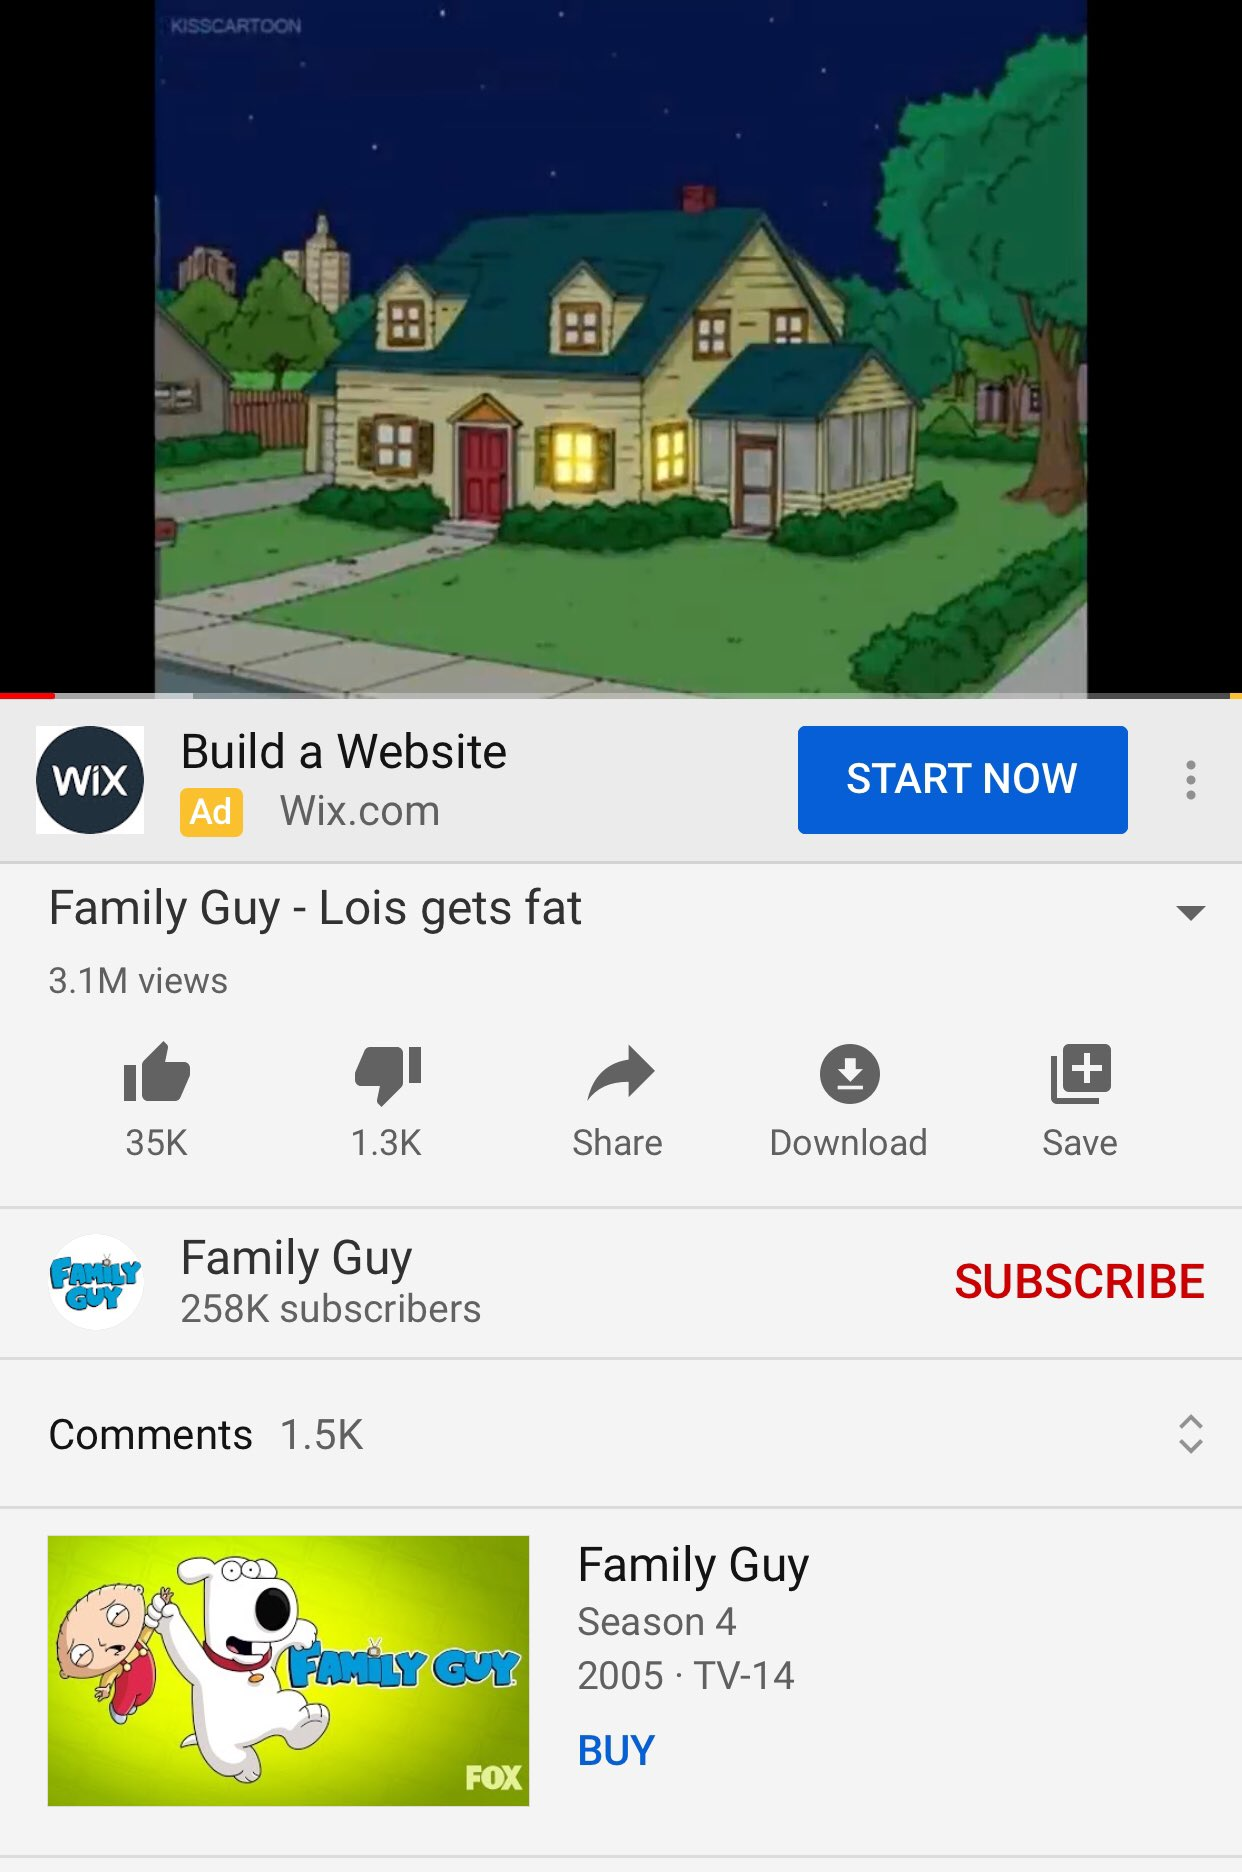 May The Poopere On Twitter Kisscartoon Is So Convenient That The Official Family Guy Youtube Channel Uses It To Get Clips Of Their Own Show